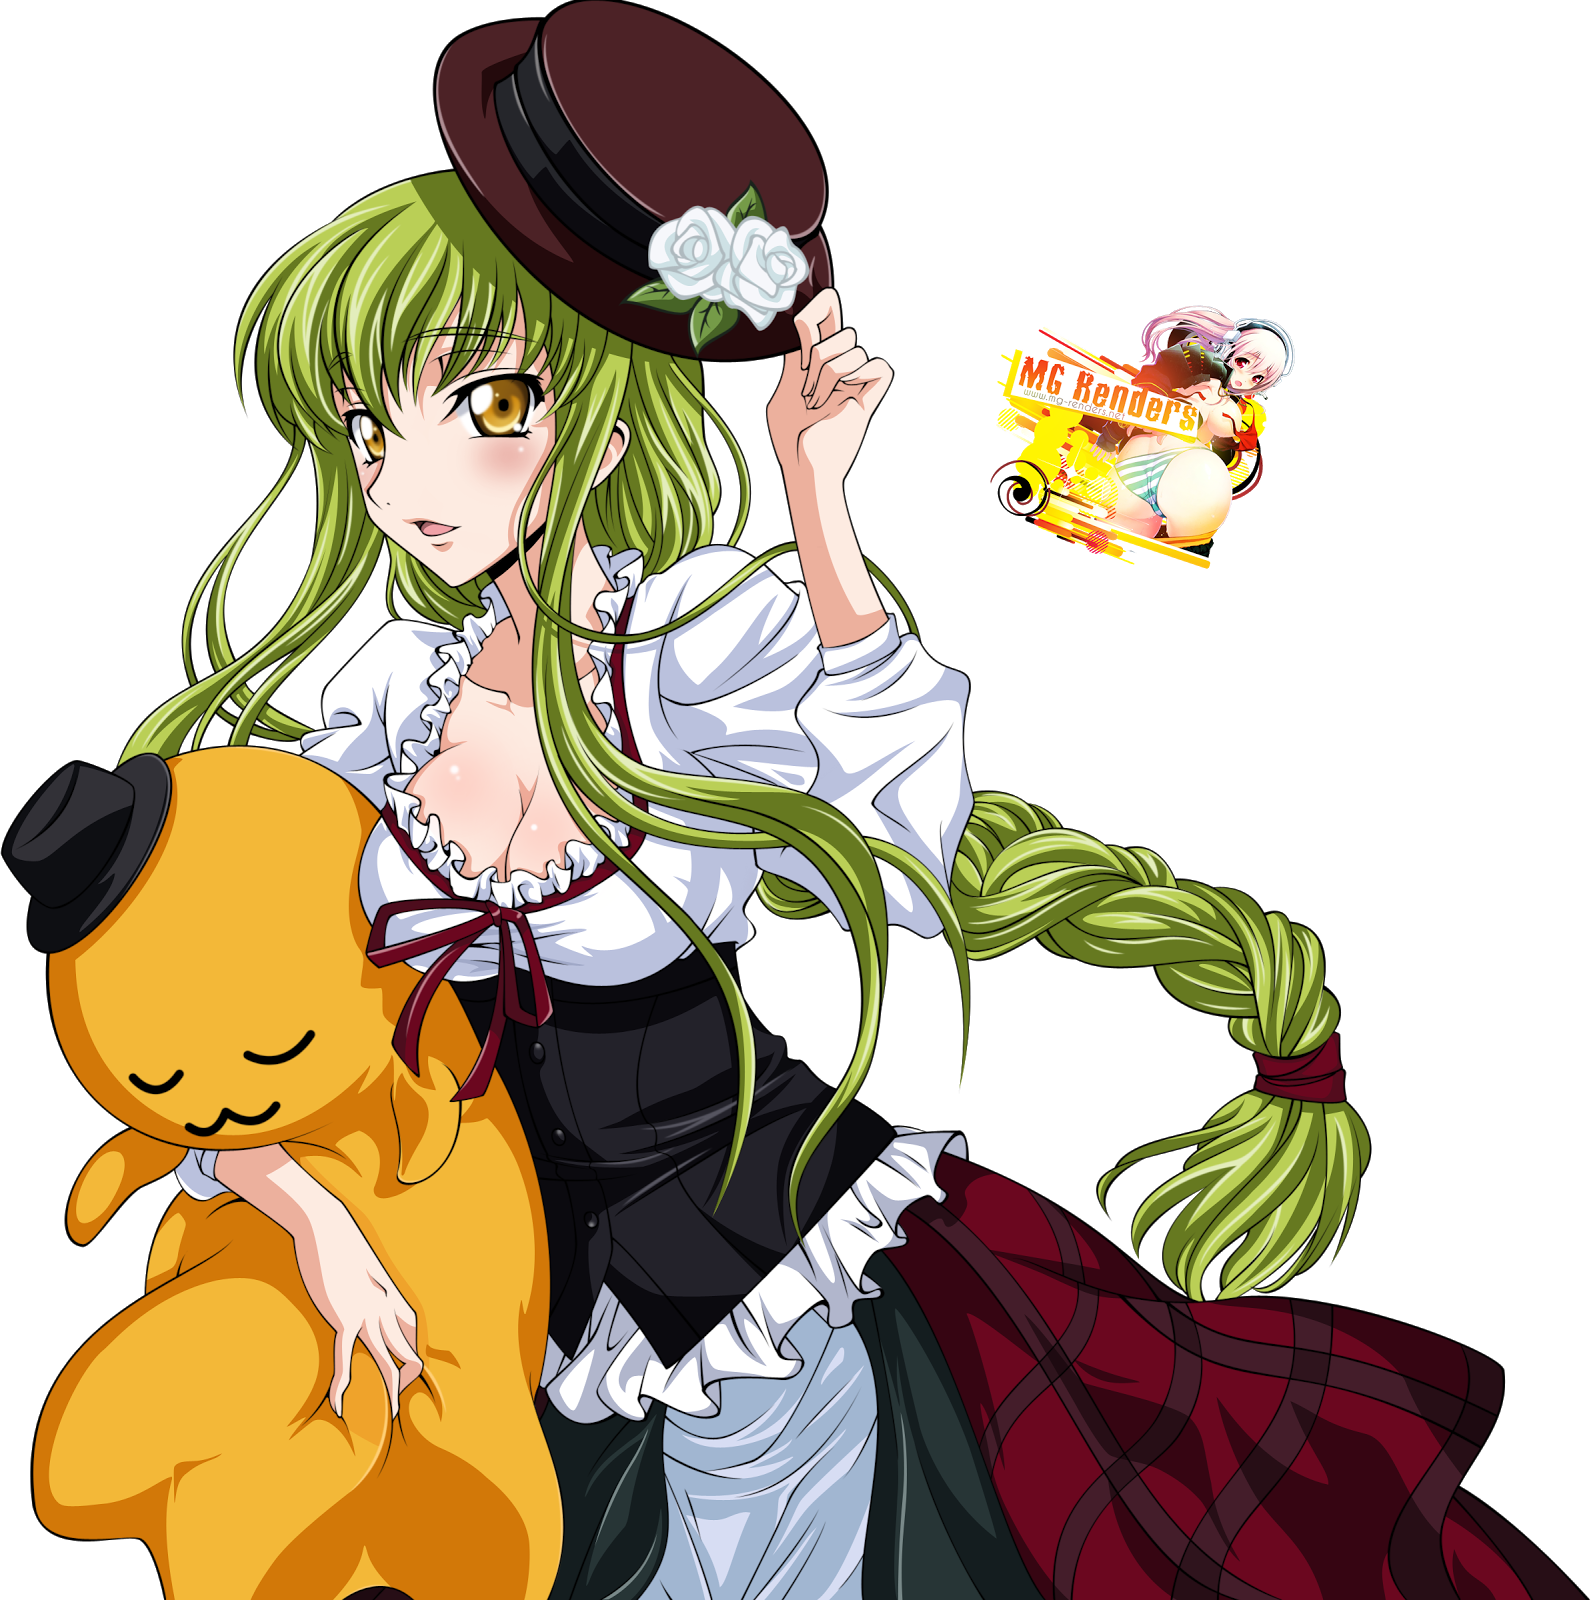 Tags: Anime, Render,  C.C.,  Code Geass,  PNG, Image, Picture